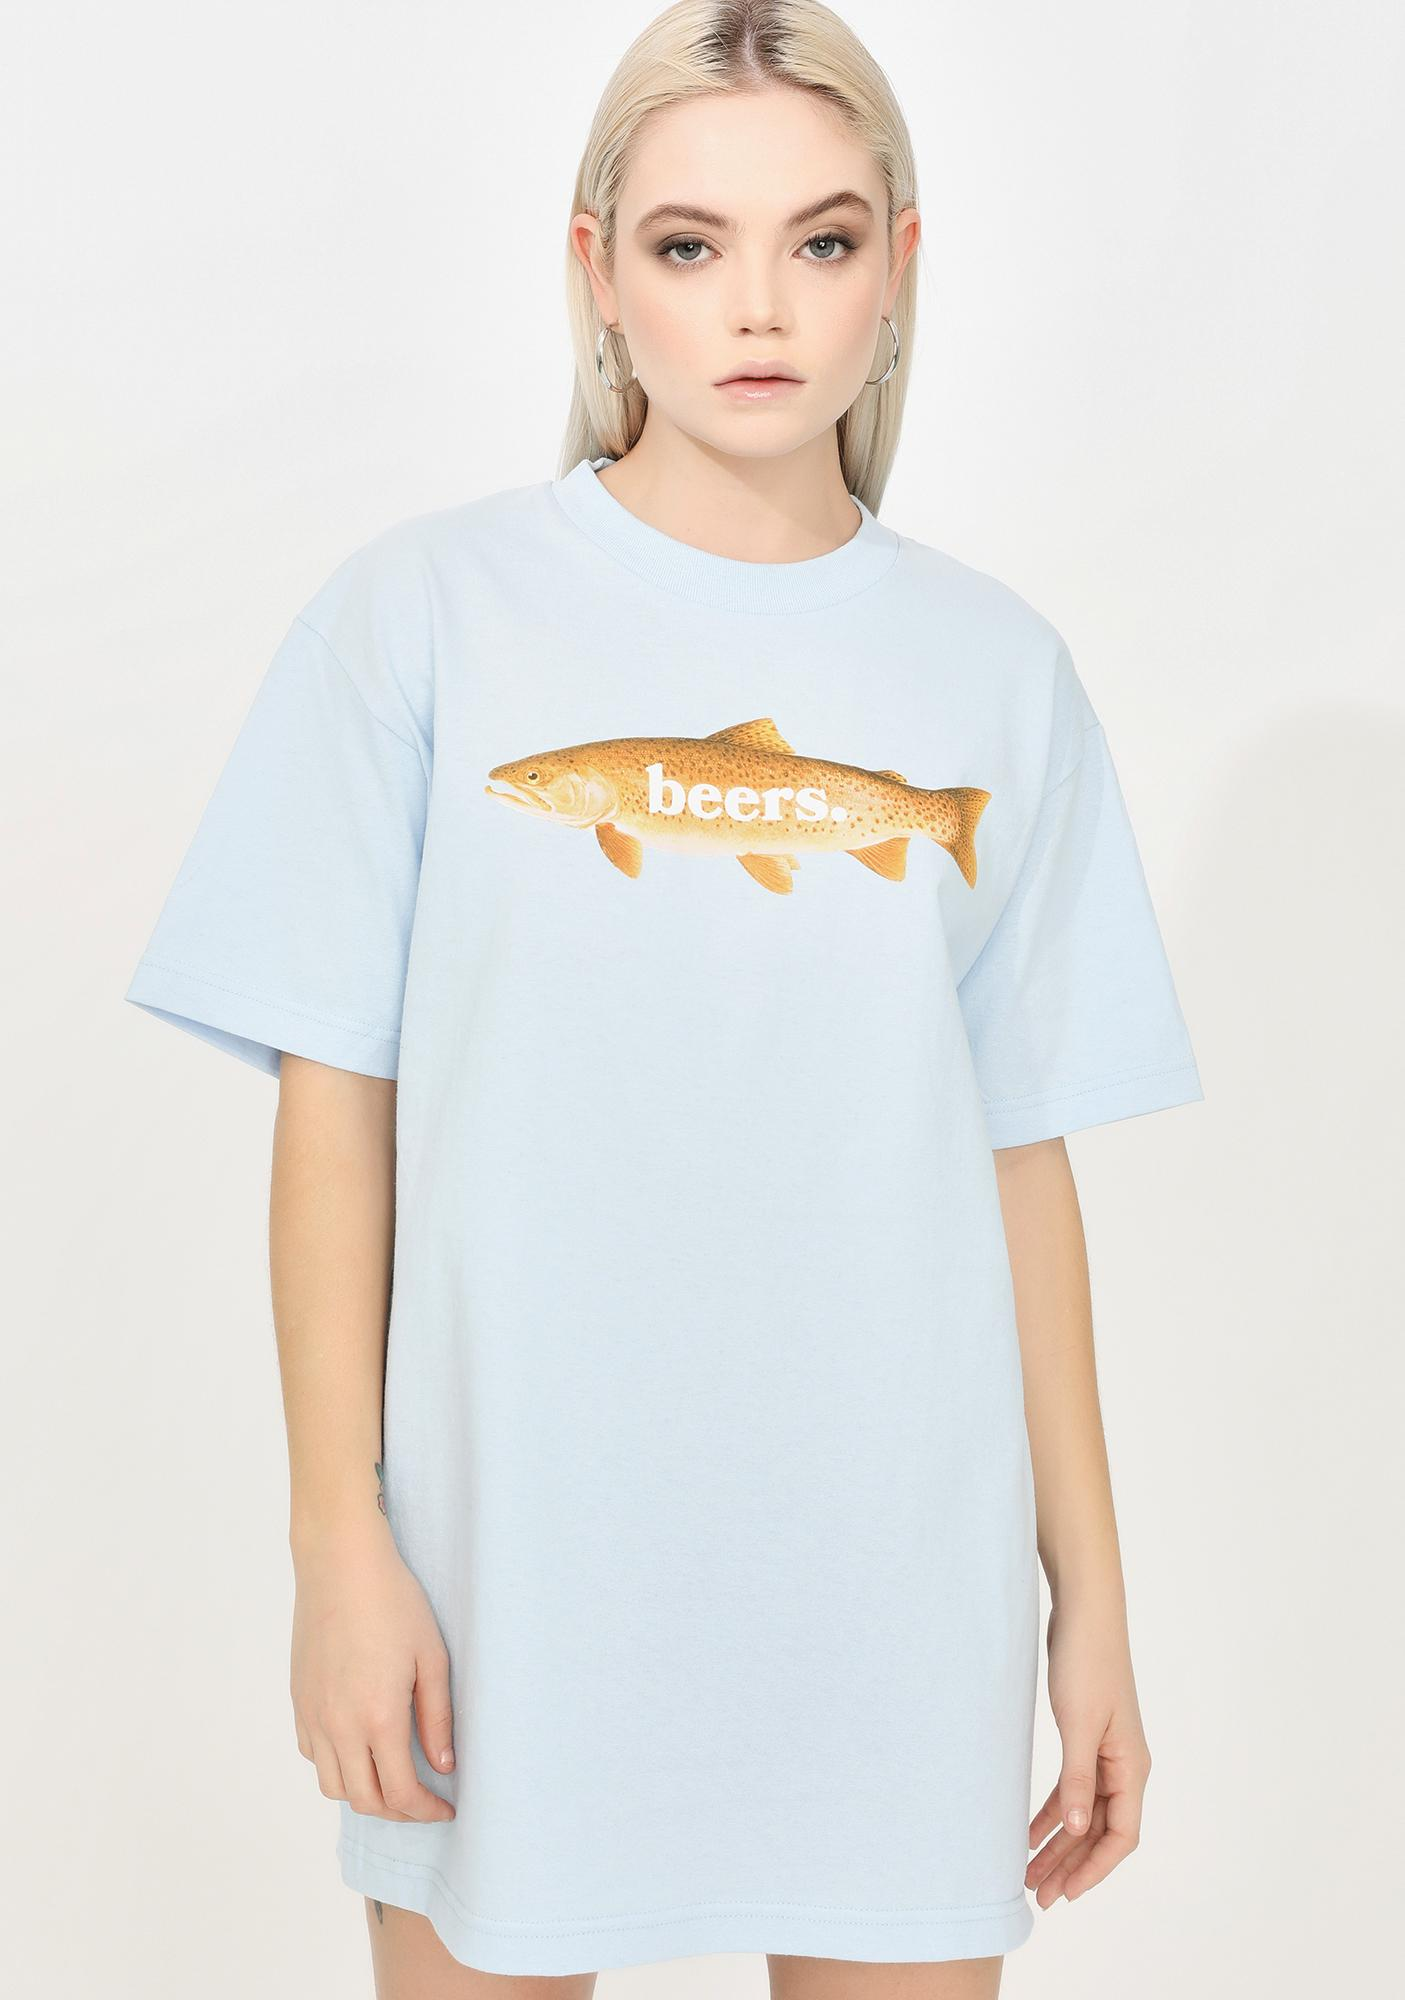 Beers Trout Graphic Tee